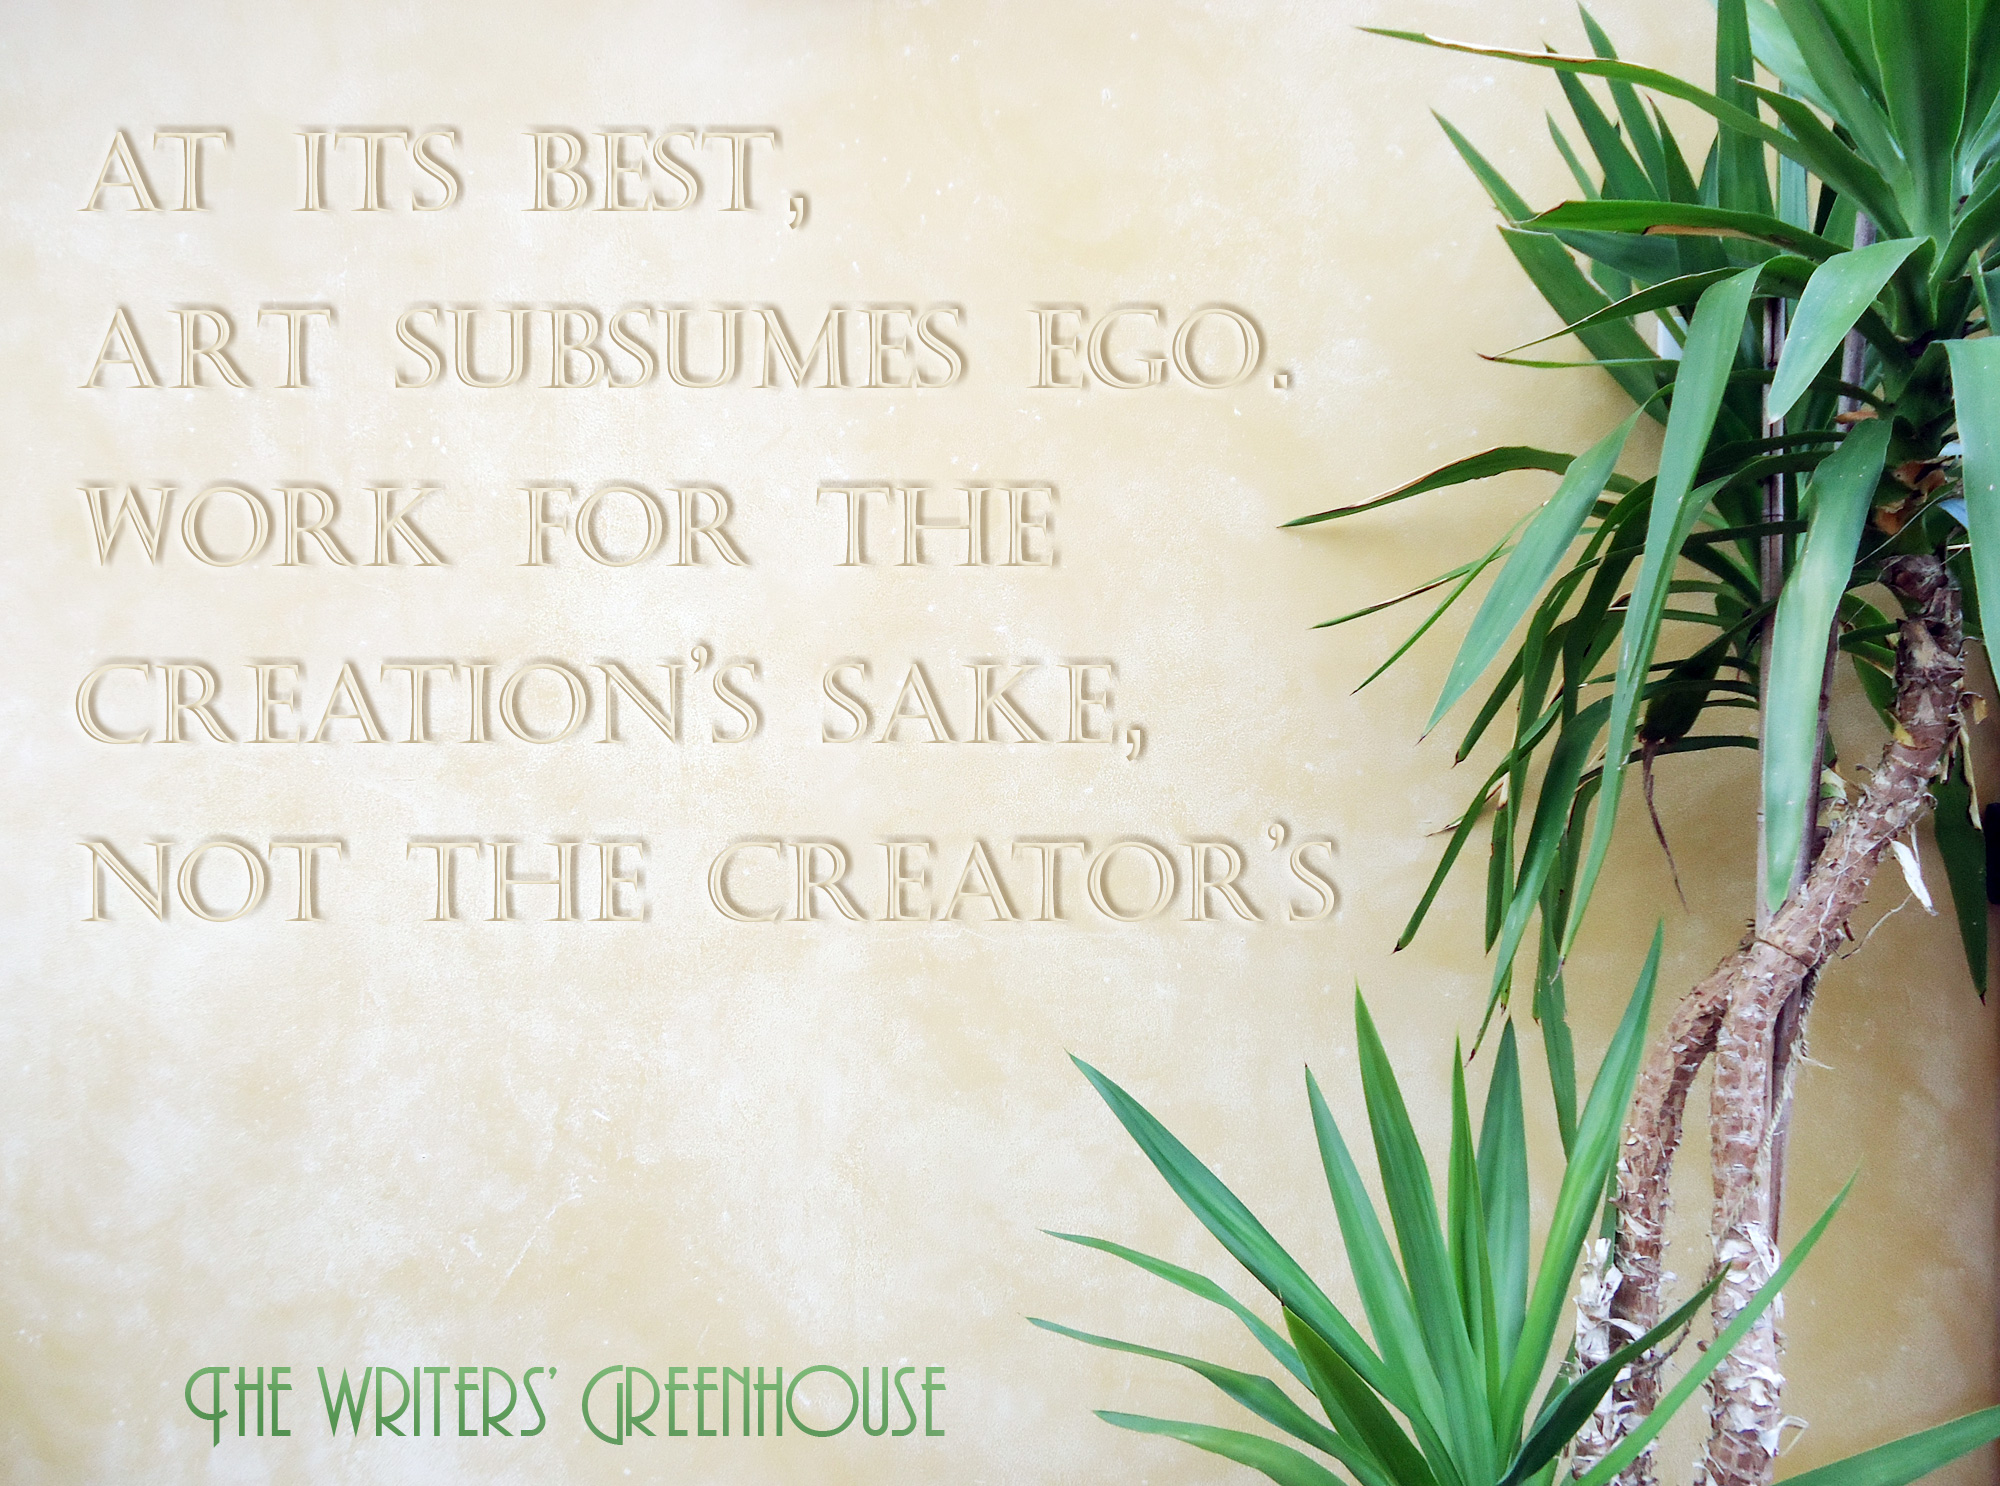 At its best, art subsumes ego. Work for the creation's sake, not the creator's.